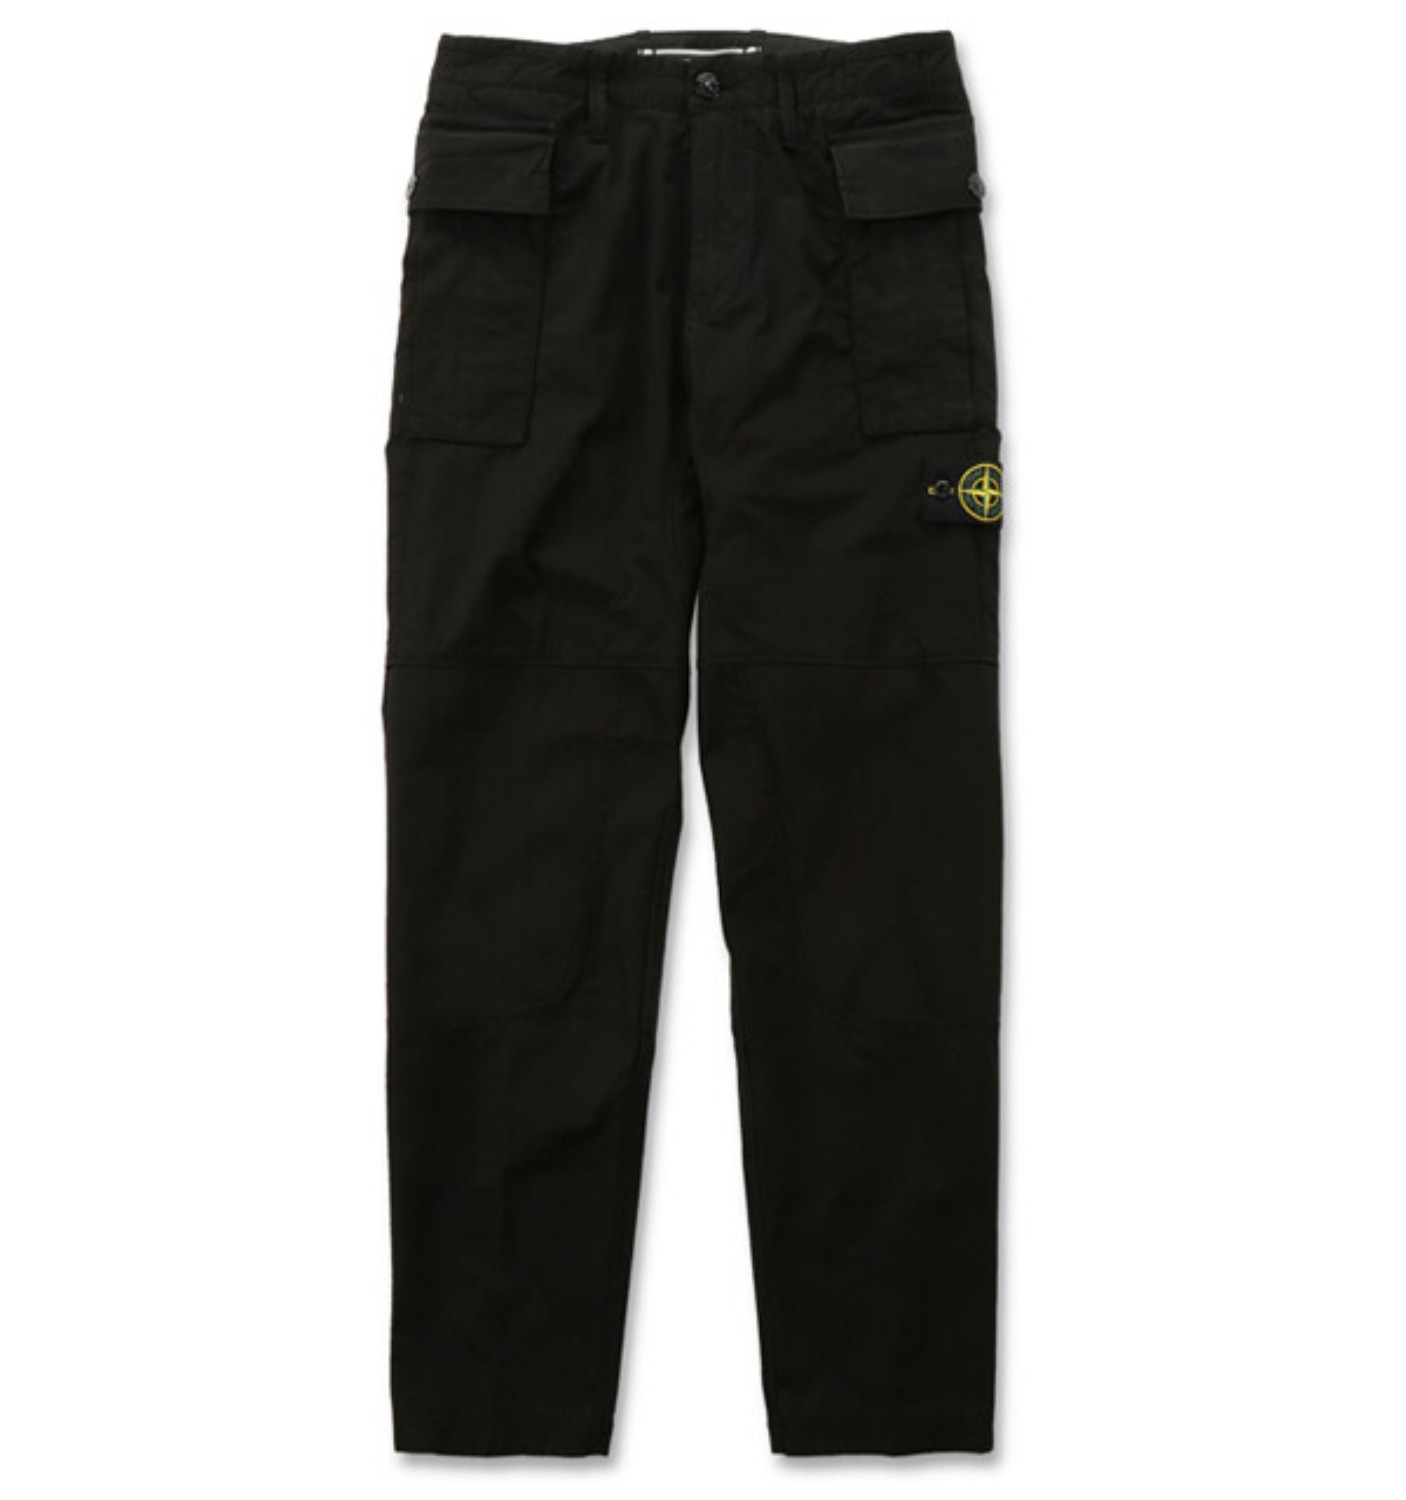 GAUZED COTTON RIP STOP GARMENT DYED PANTS BLACK